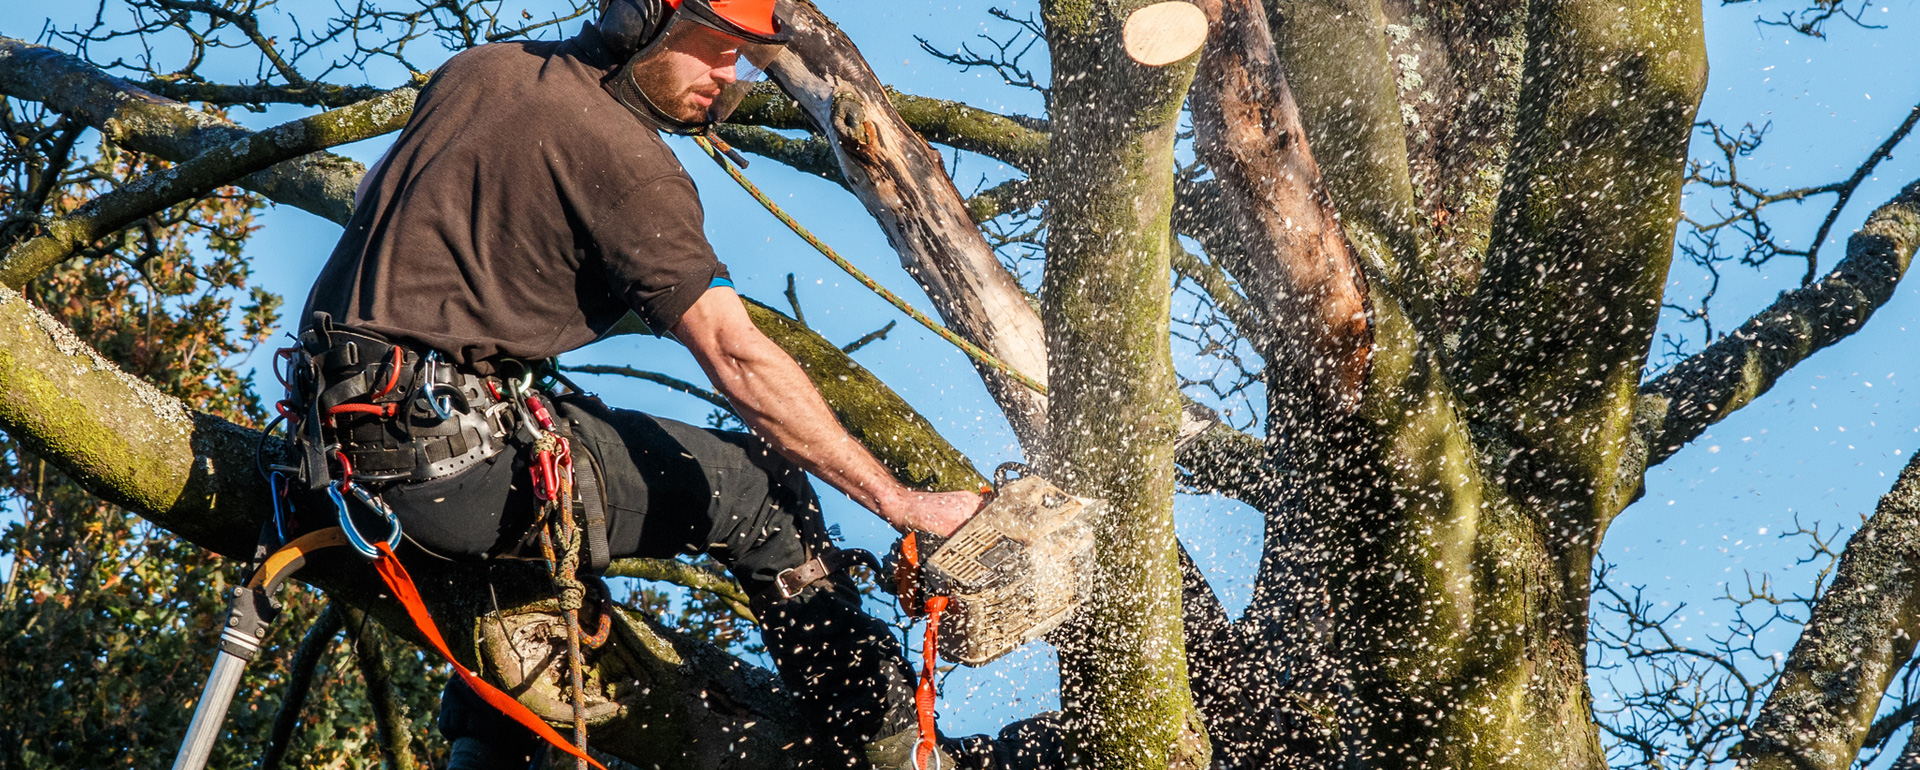 Why Should I Look For tree removal Adelaide Company?